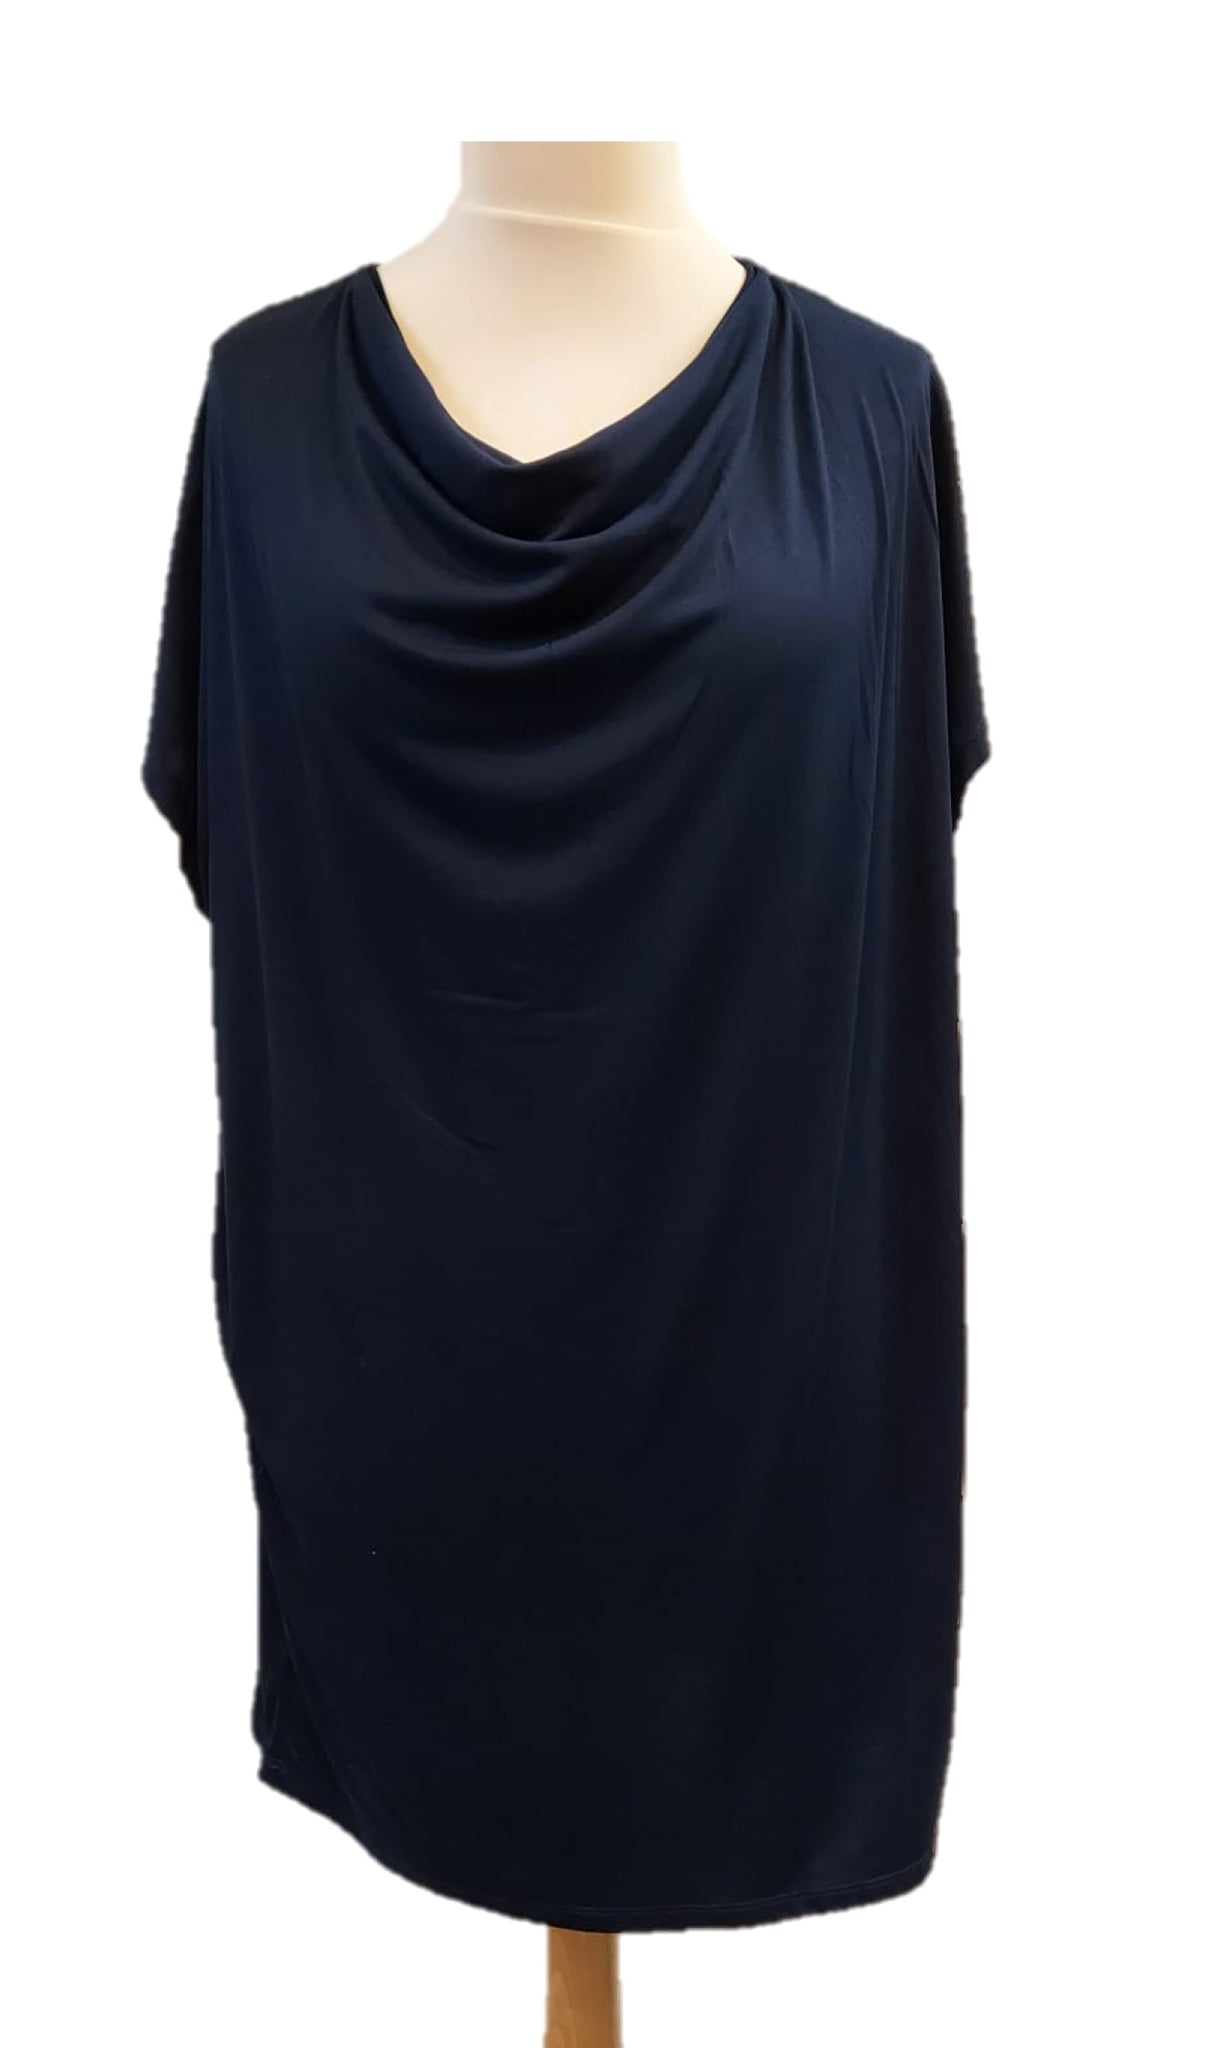 Cowl Neck Top - Navy